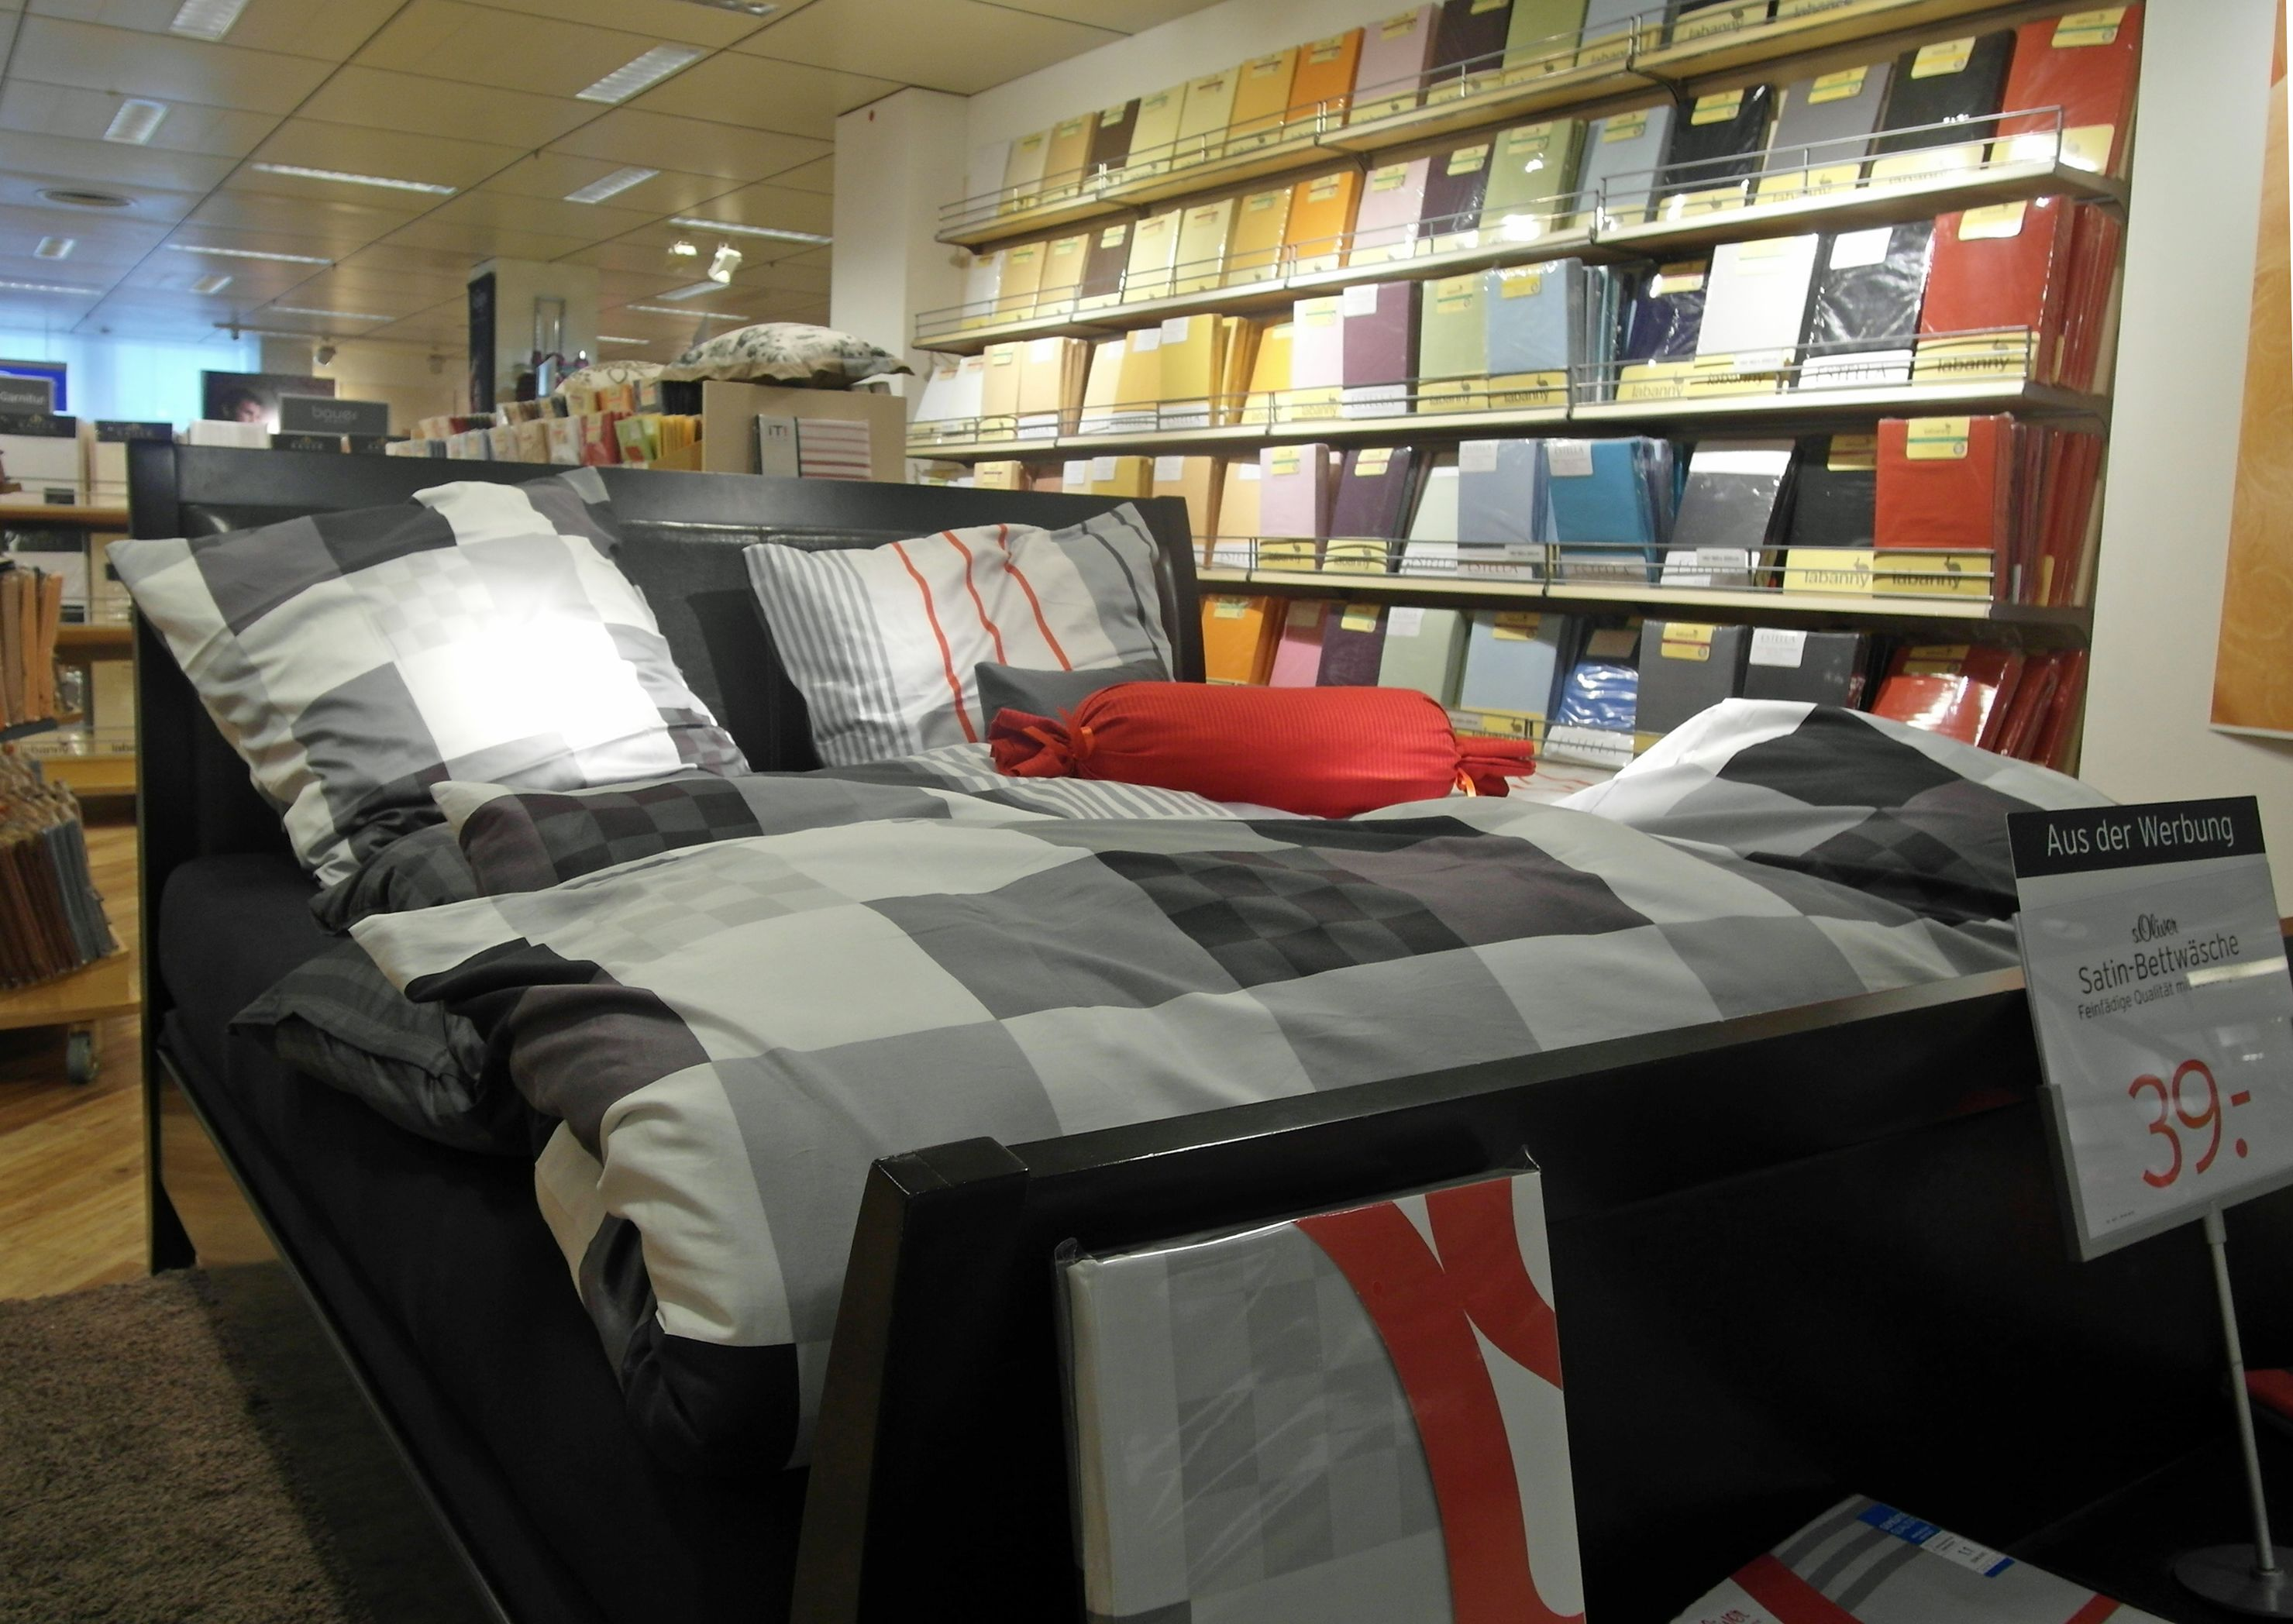 Livingston Bettwäsche Bedding The Complete Information And Online Sale With Free